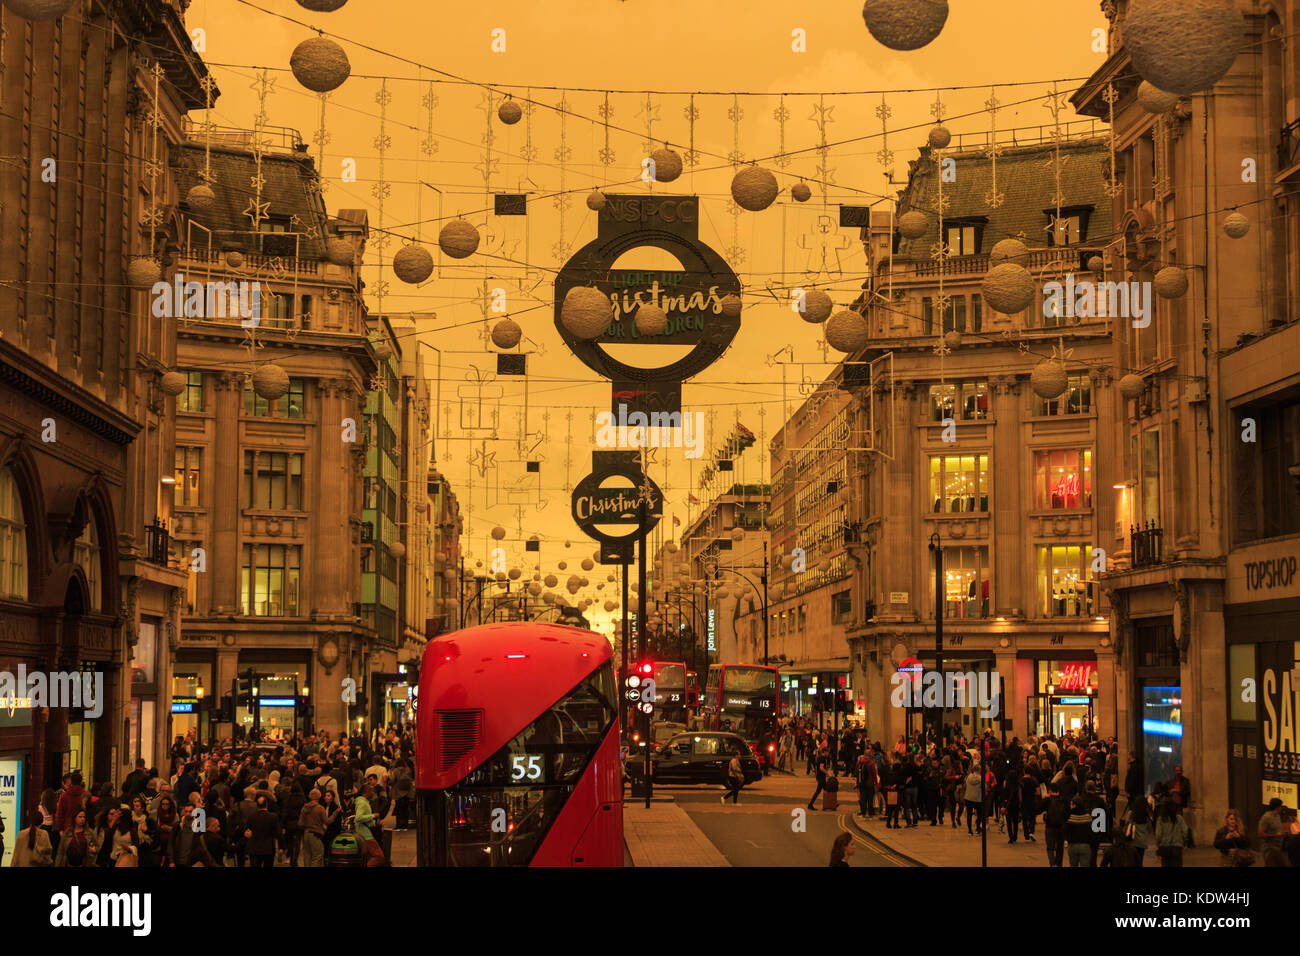 london-uk-16th-oct-2017-shoppers-on-oxford-street-do-not-appear-too-KDW4HJ.jpg